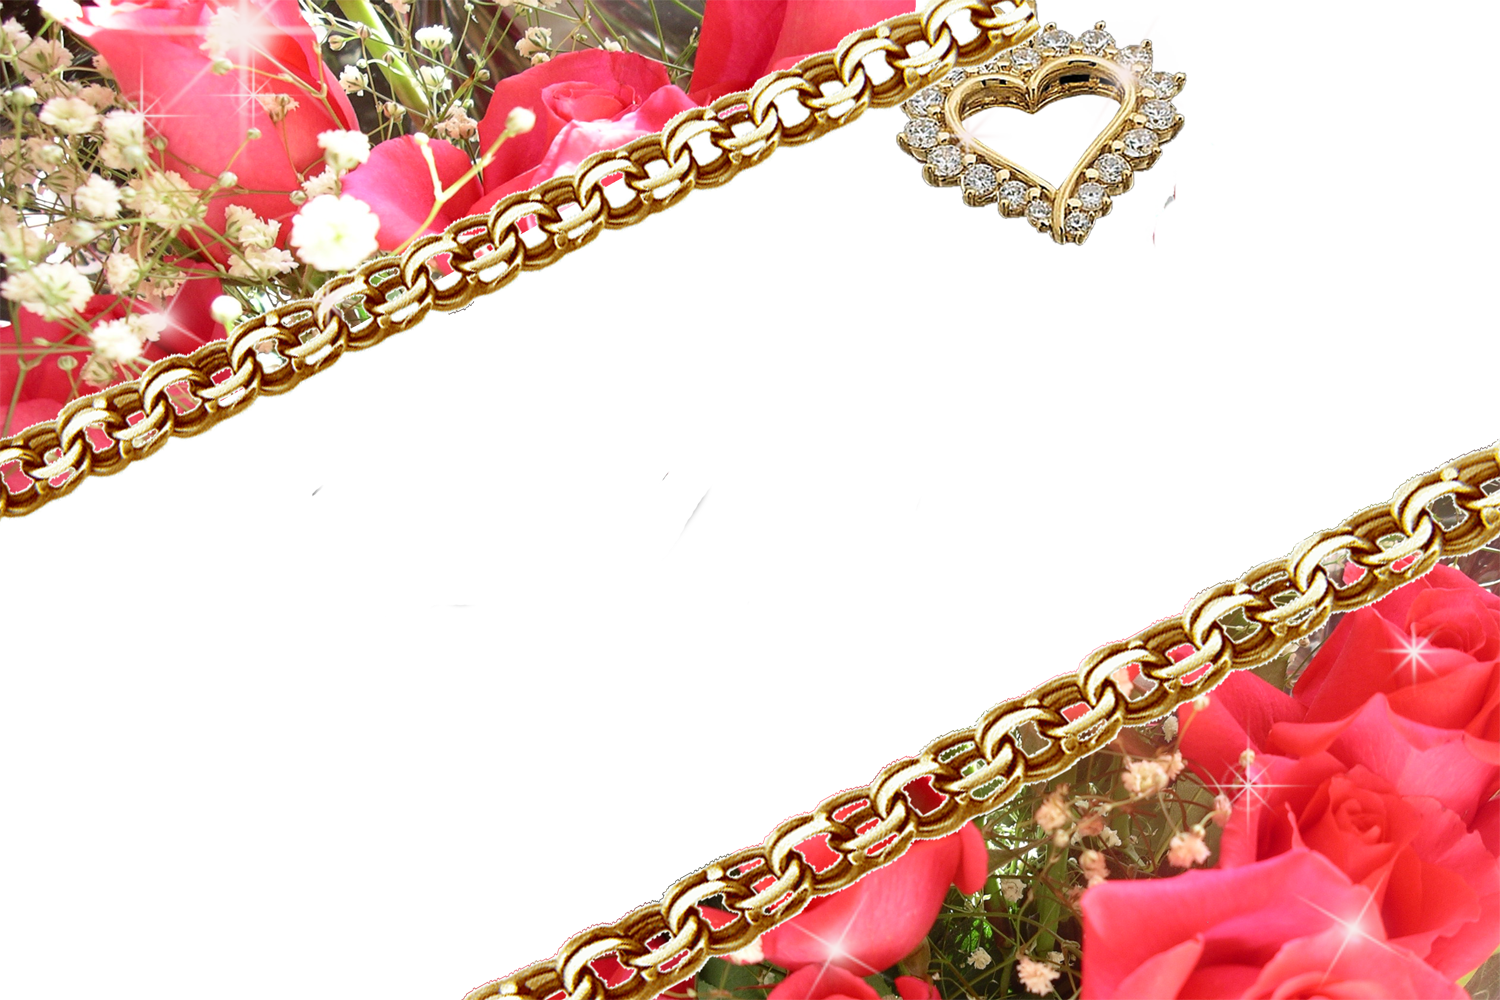 Red Frames Png Frame With Flowers On The Corner